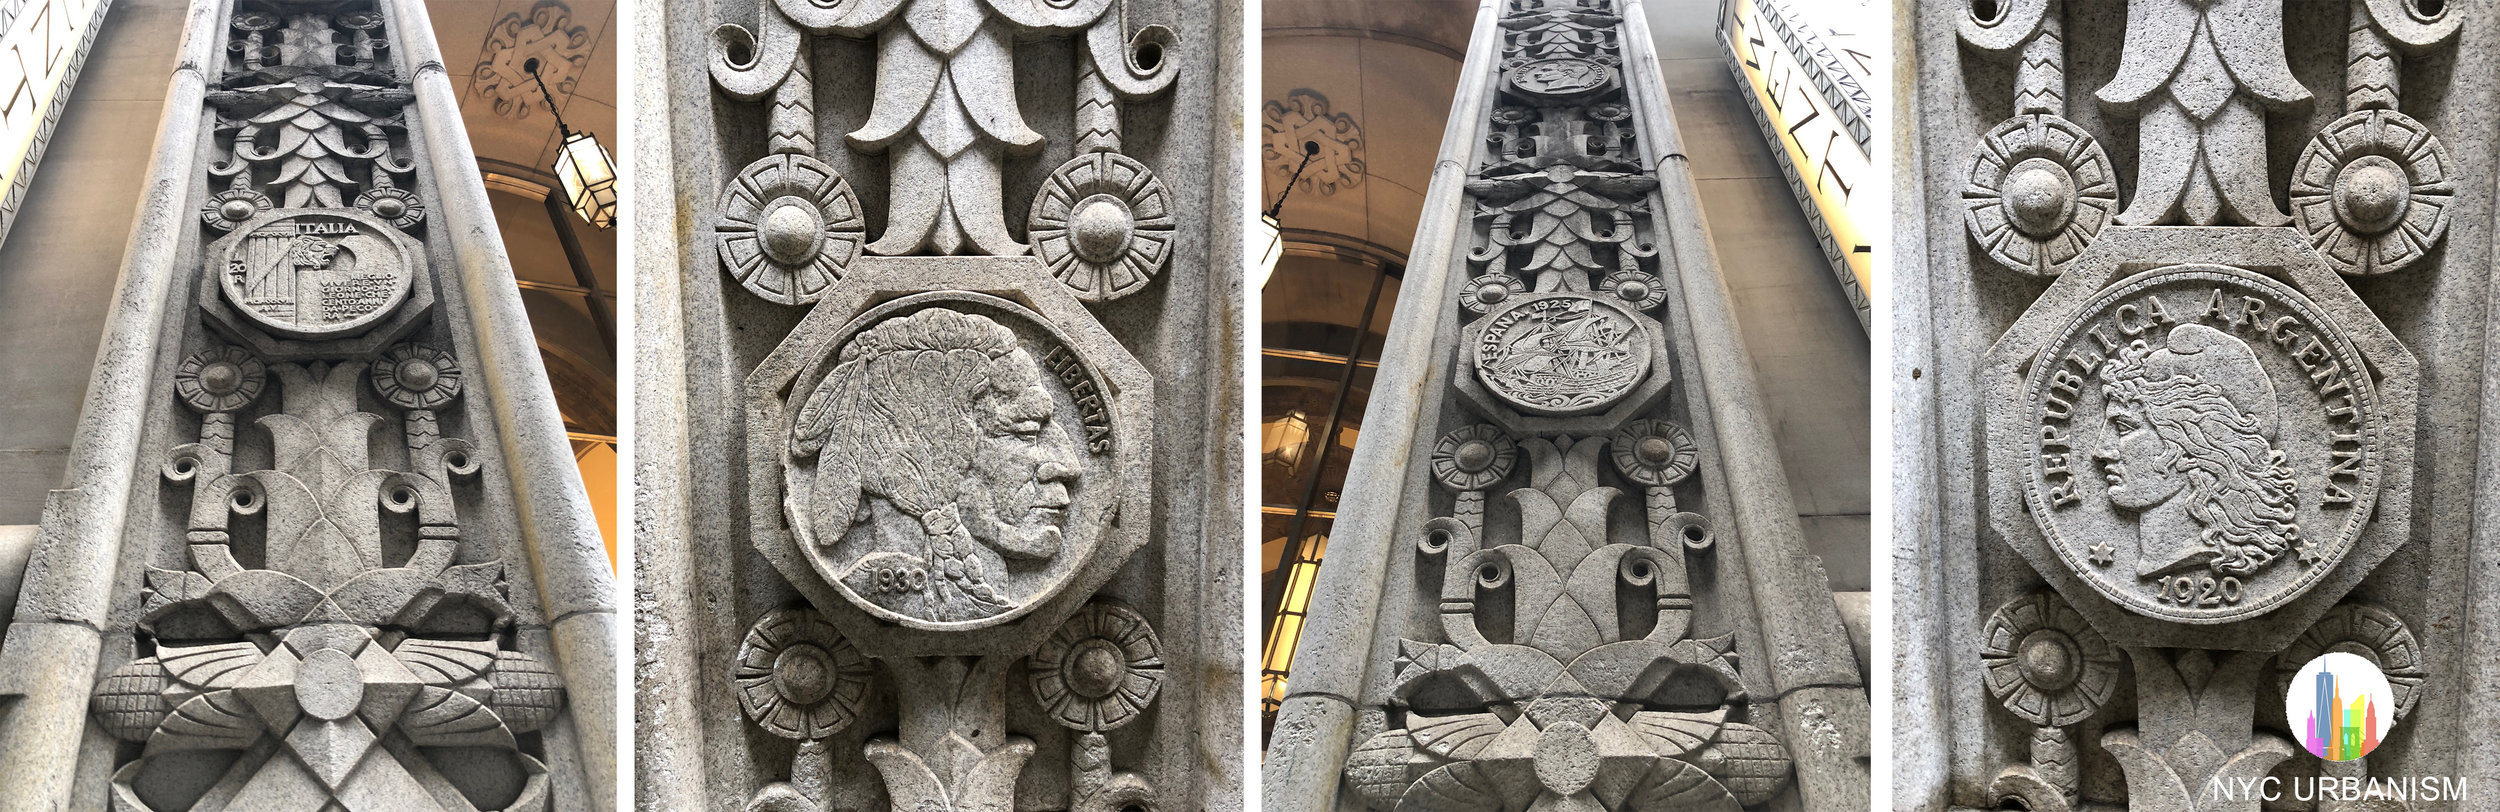 Coins surrounding the entrance depicting countries where the bank had branches.